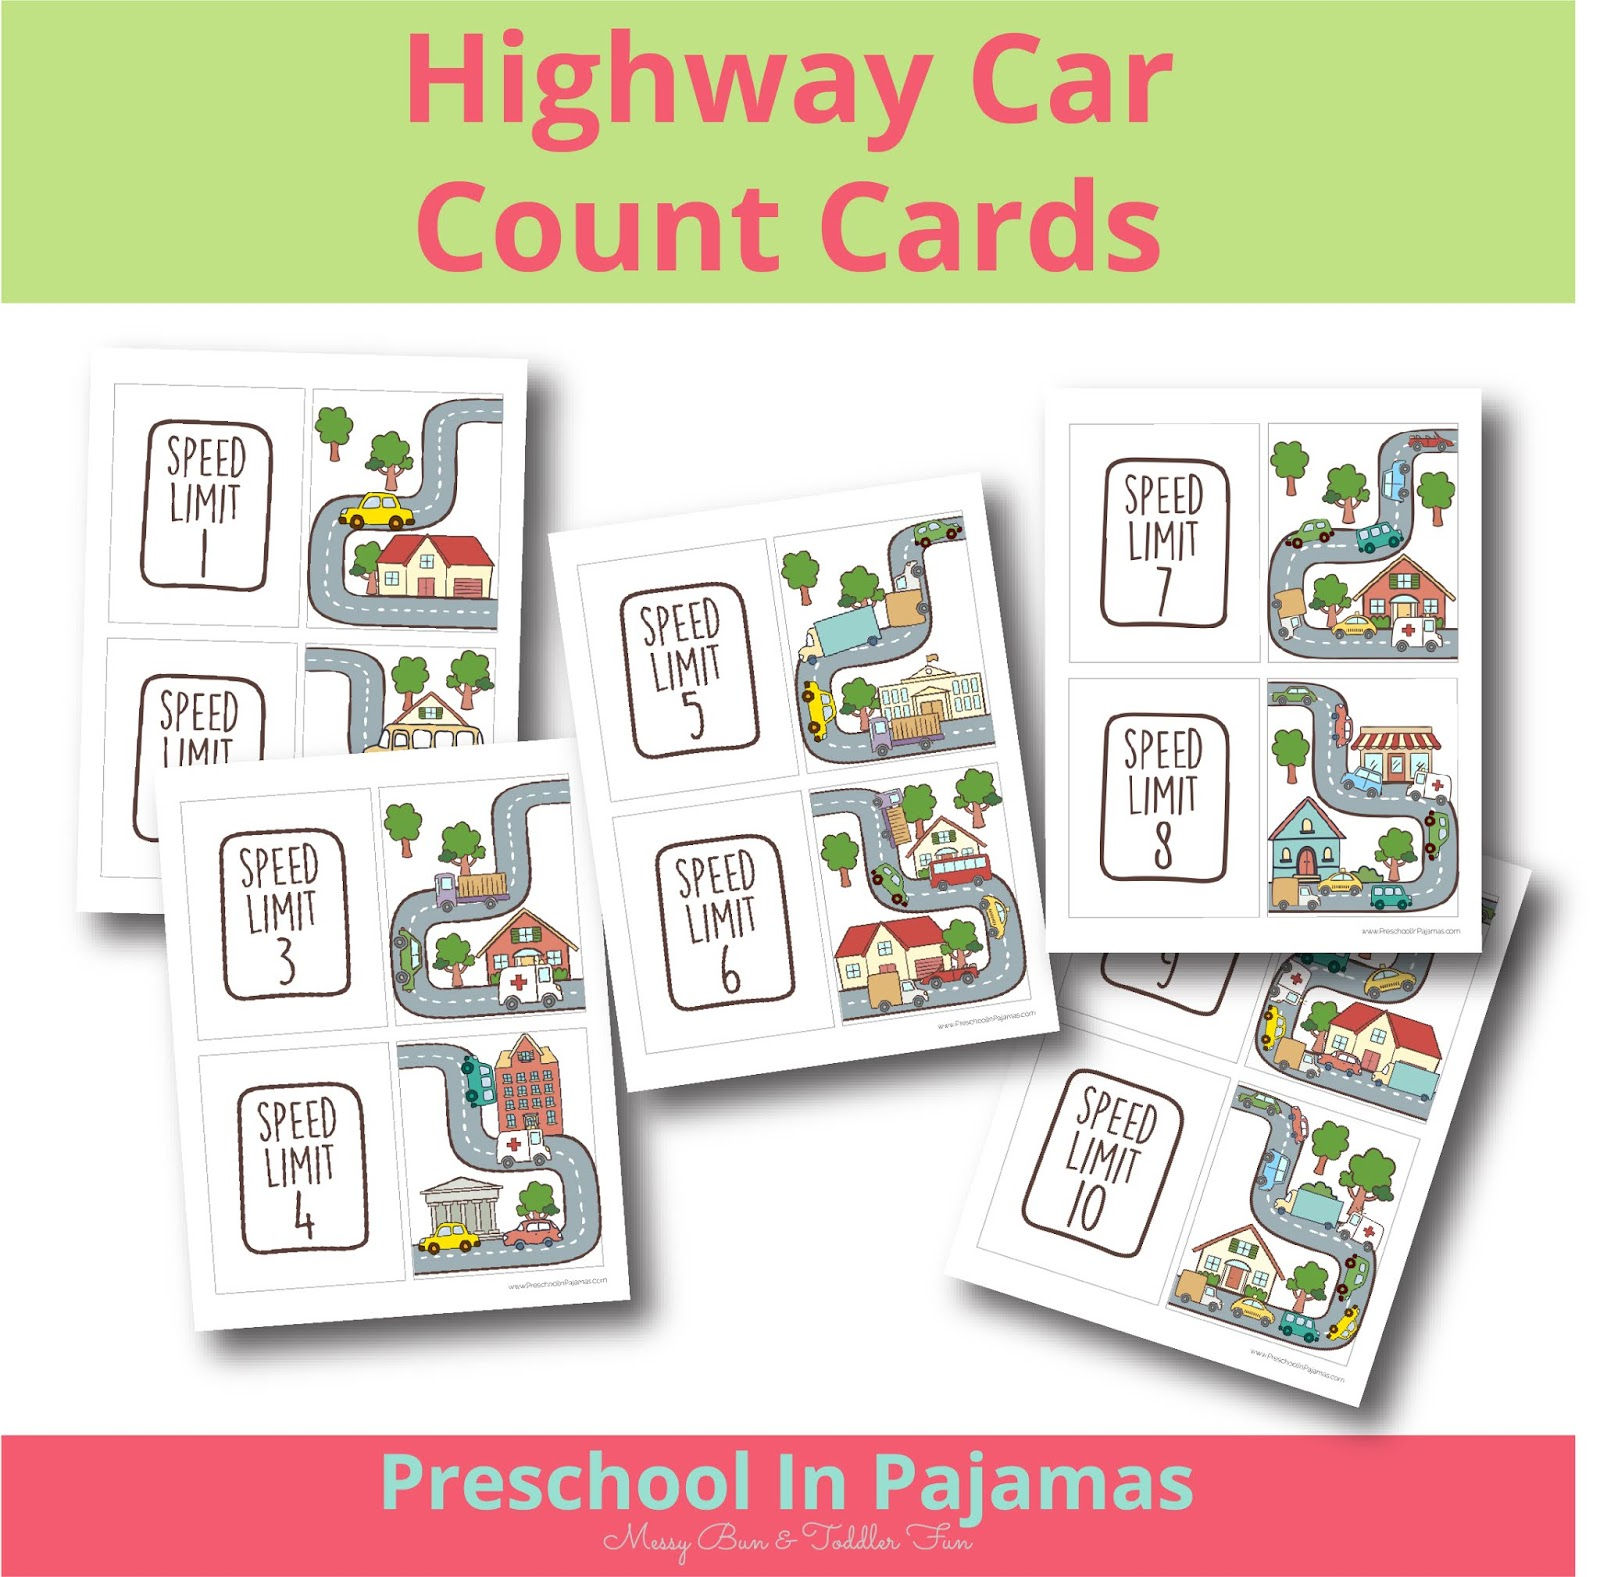 Free Highway Car Counting Printable Cards